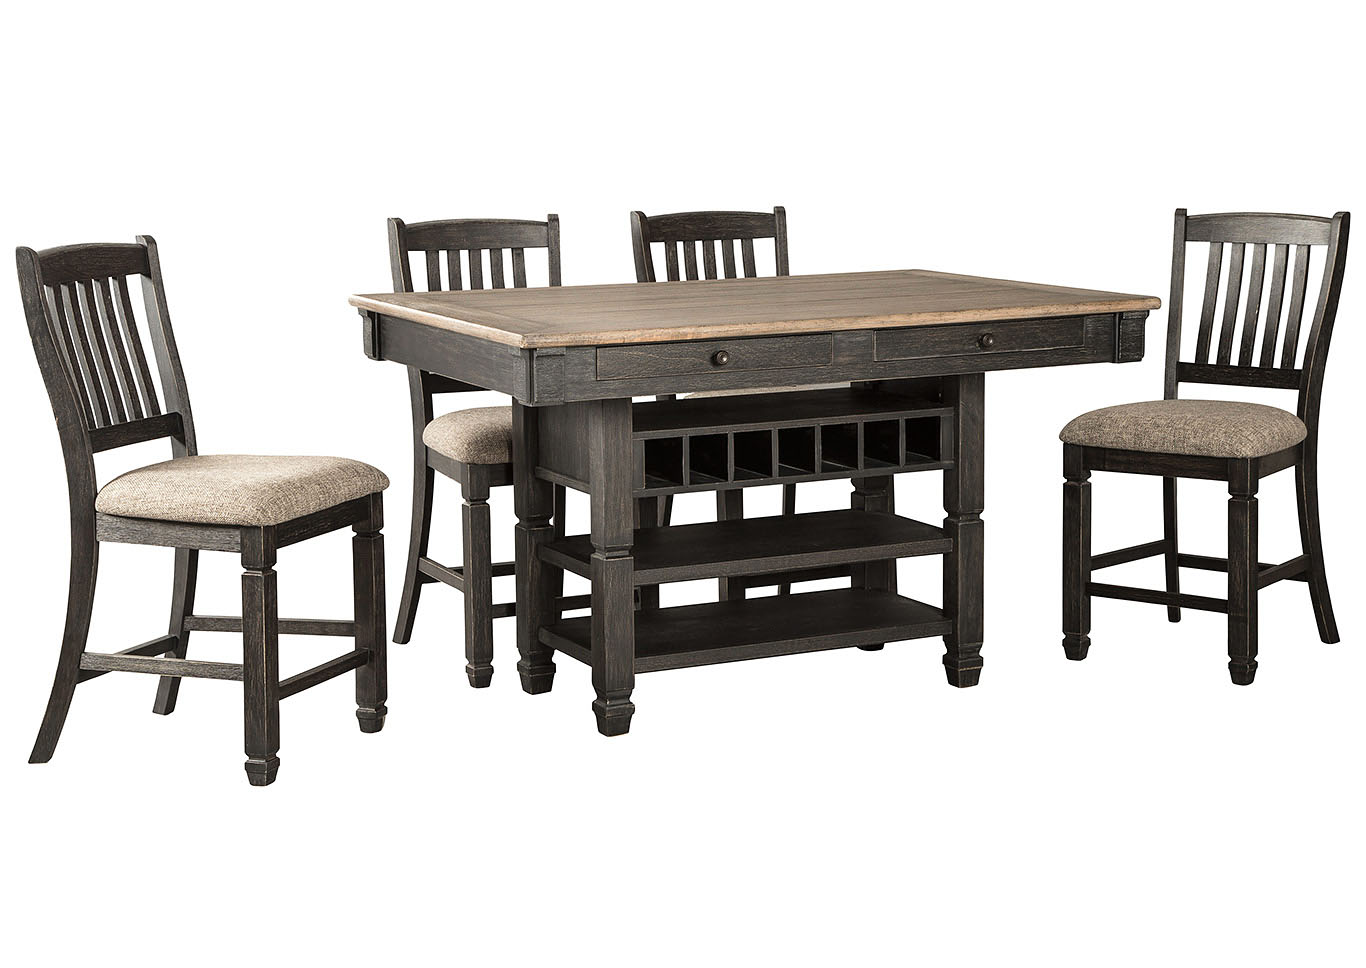 Tyler Creek Counter Height Dining Table and 4 Counter Stools